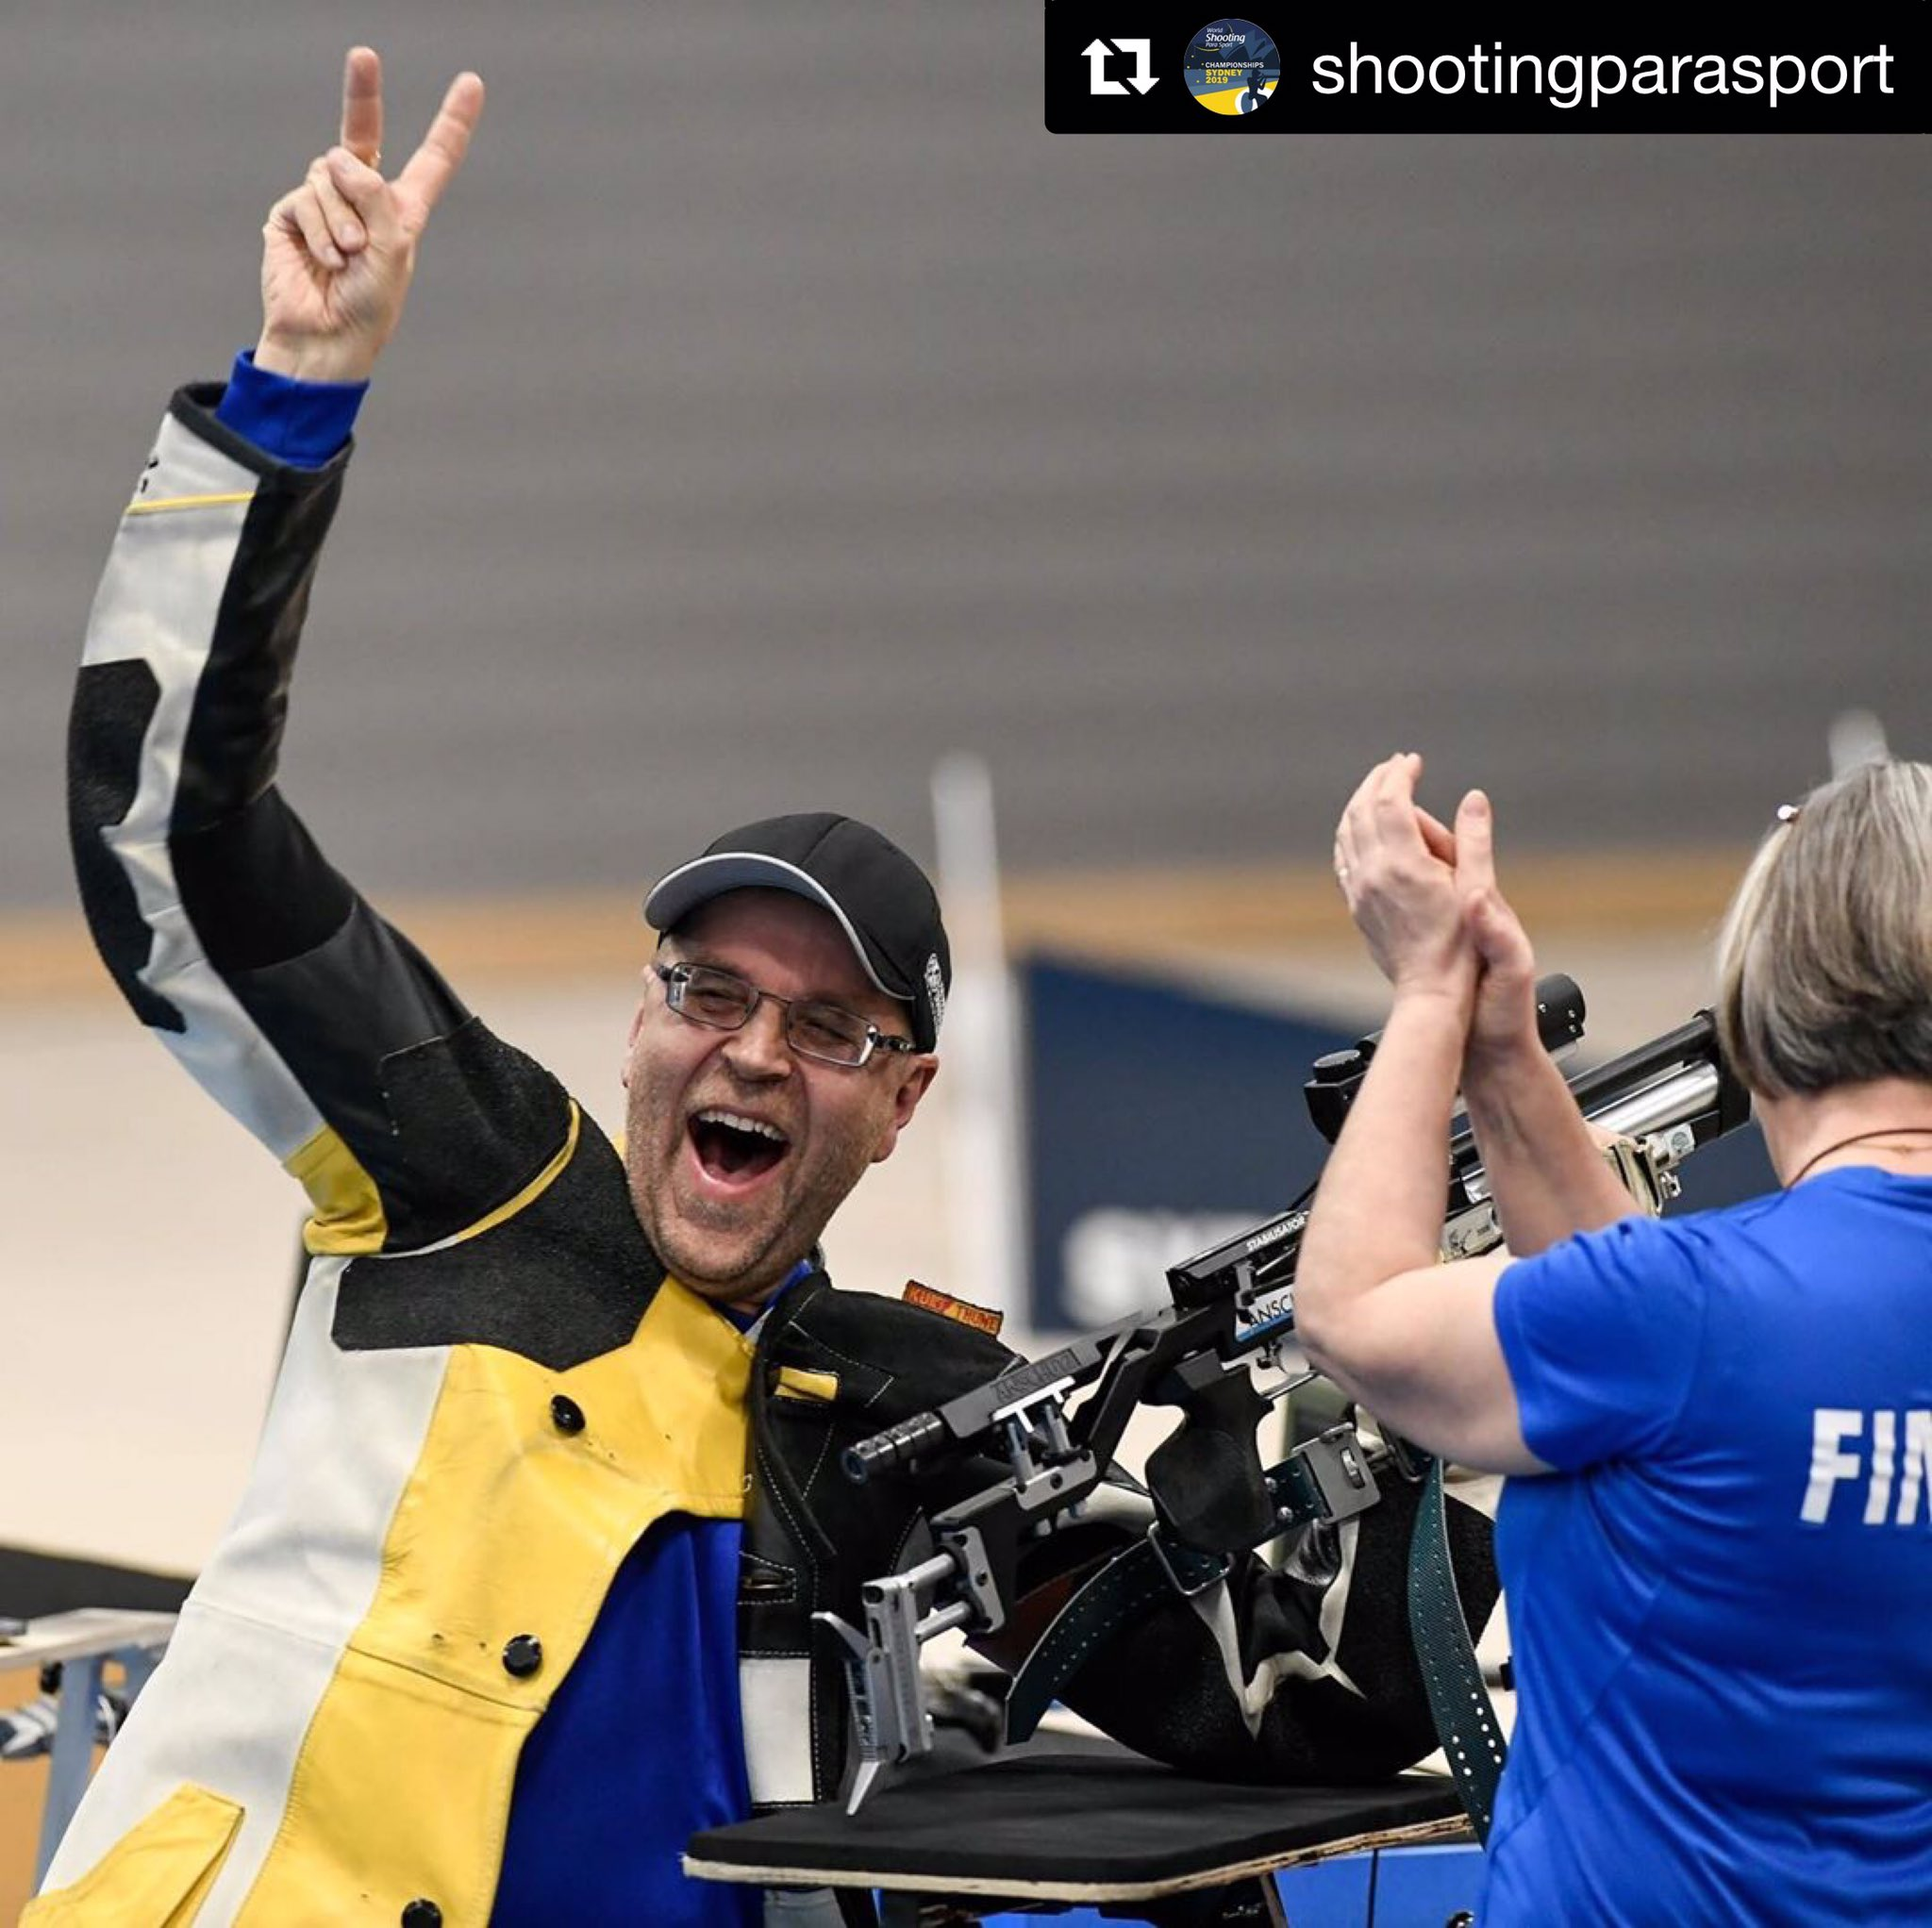 History in Sydney!🥇   Timo Nystrom 🇫🇮 wins gold in the first ever vision impaired event at the #ShootingParaSport World Championships!  📸: Narelle Spangher   @ShootingPara https://t.co/e05vkJ1LBp